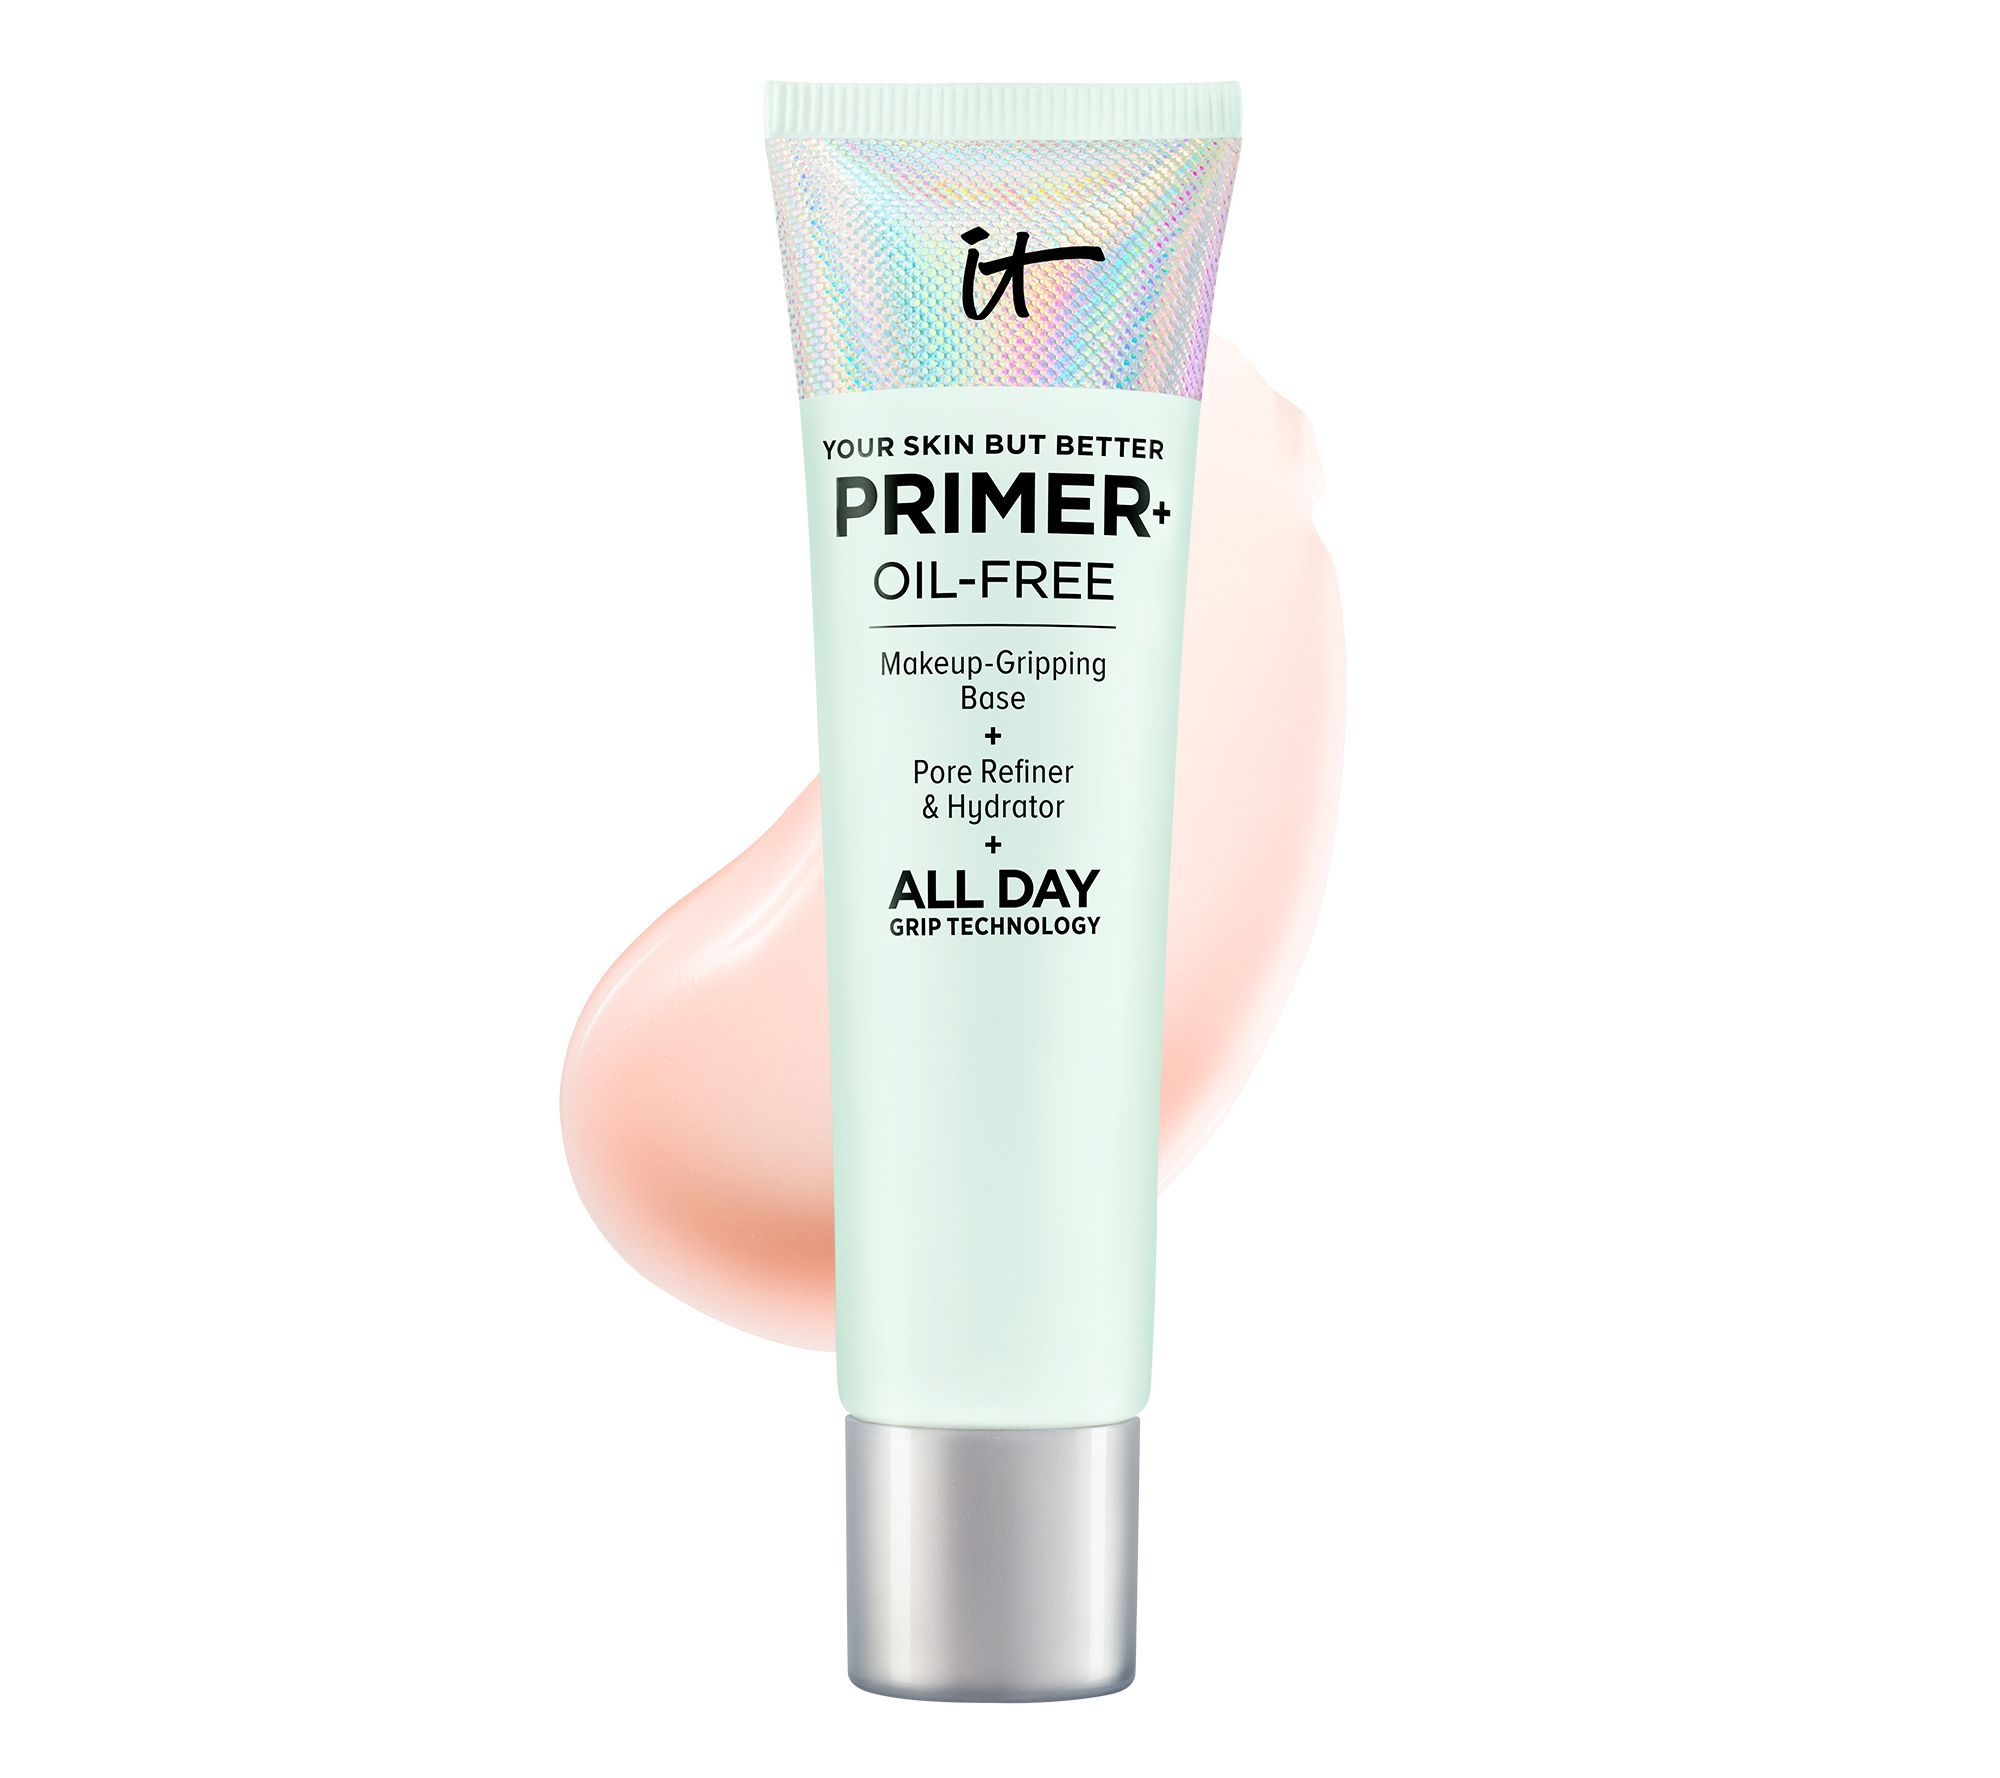 IT Cosmetics Your Skin But Better Primer Plus — in